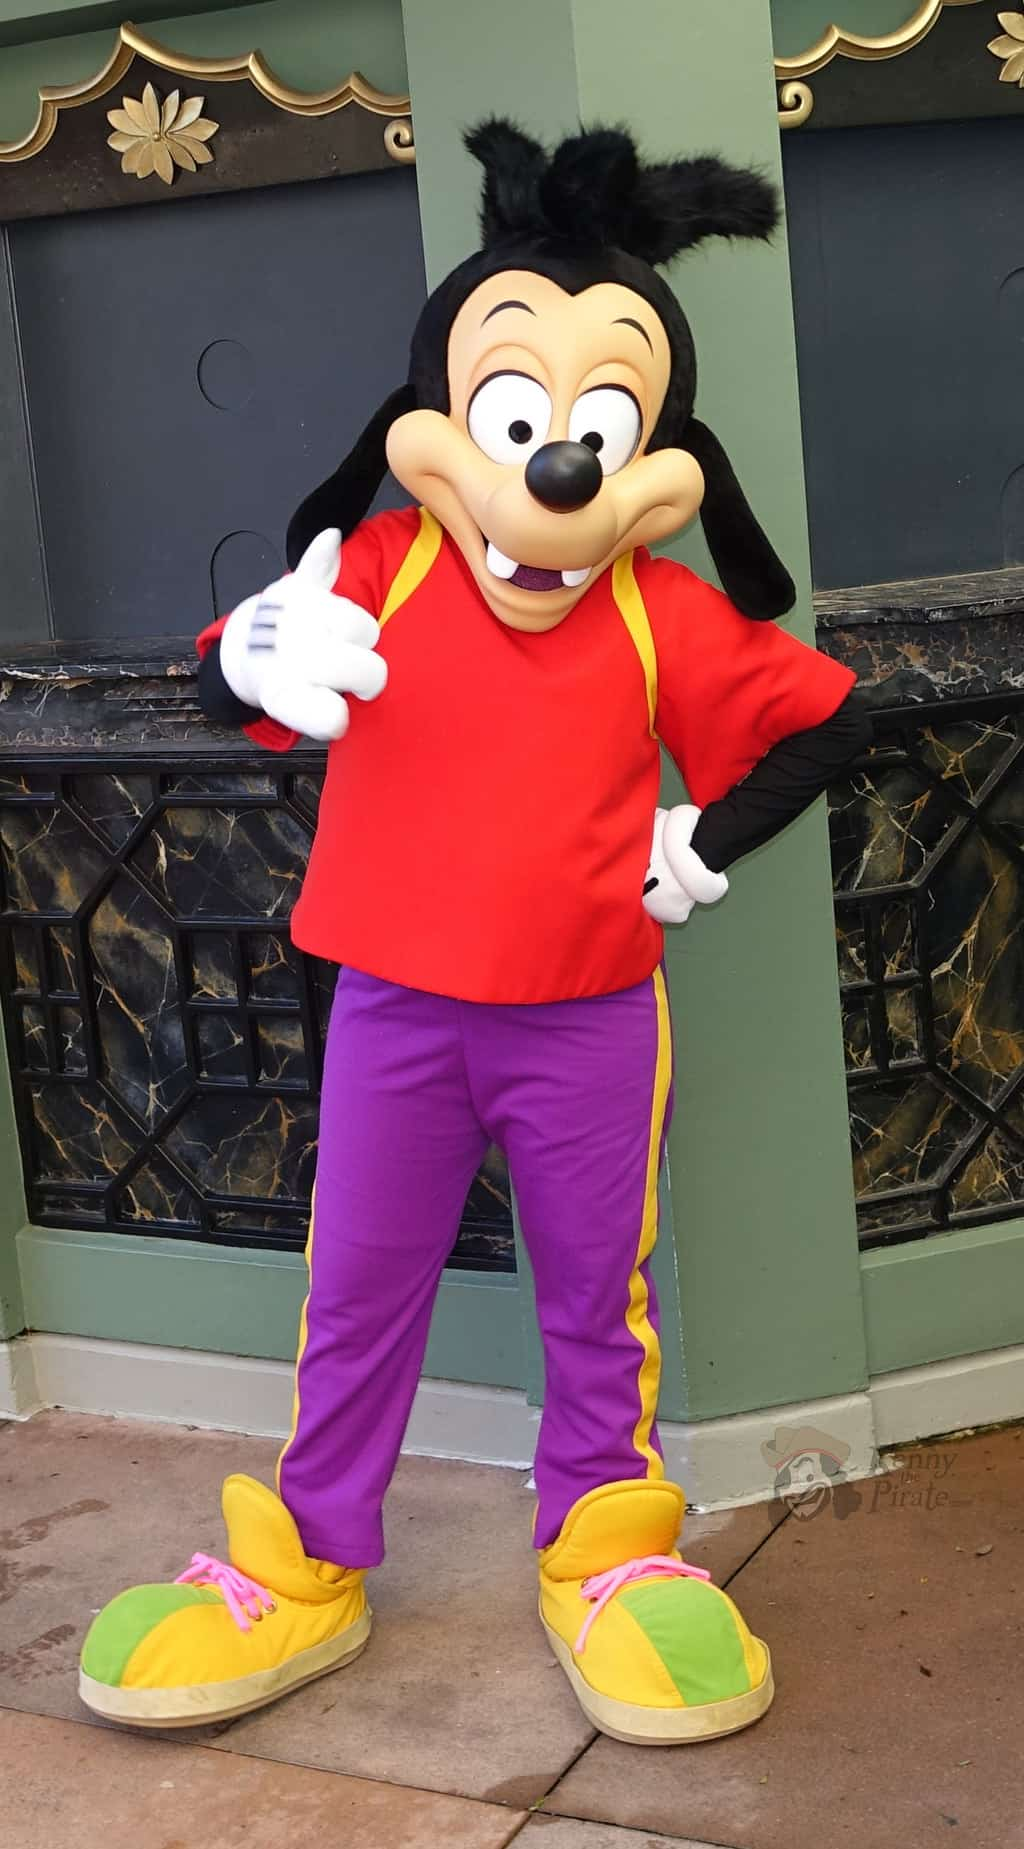 Hollywood studios character meet and greet update with an awesome hollywood studios max goof character meet and greet 1 kristyandbryce Gallery